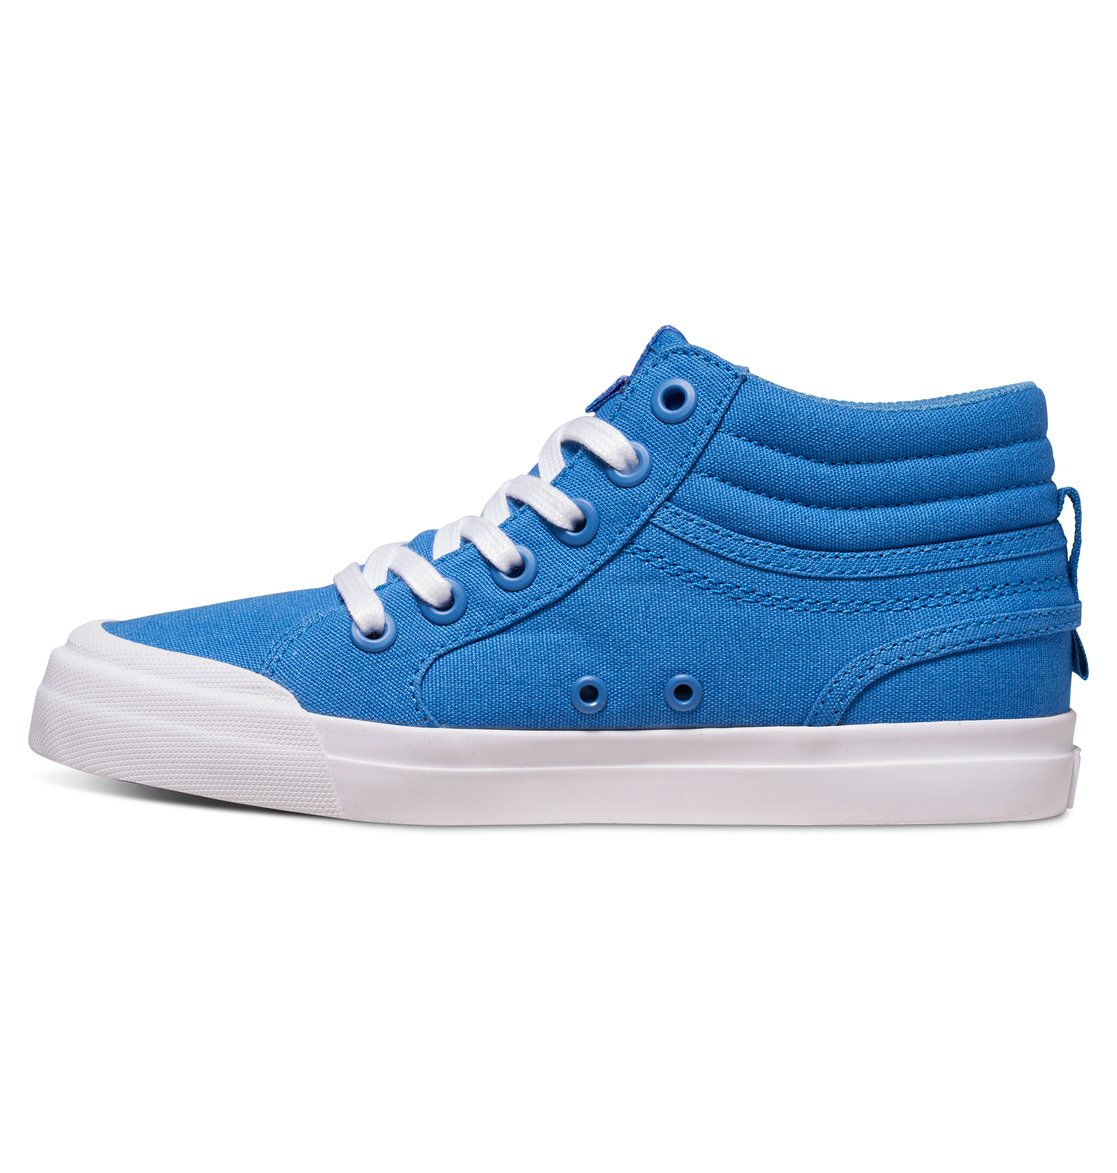 Dc High Top Shoes For Girls